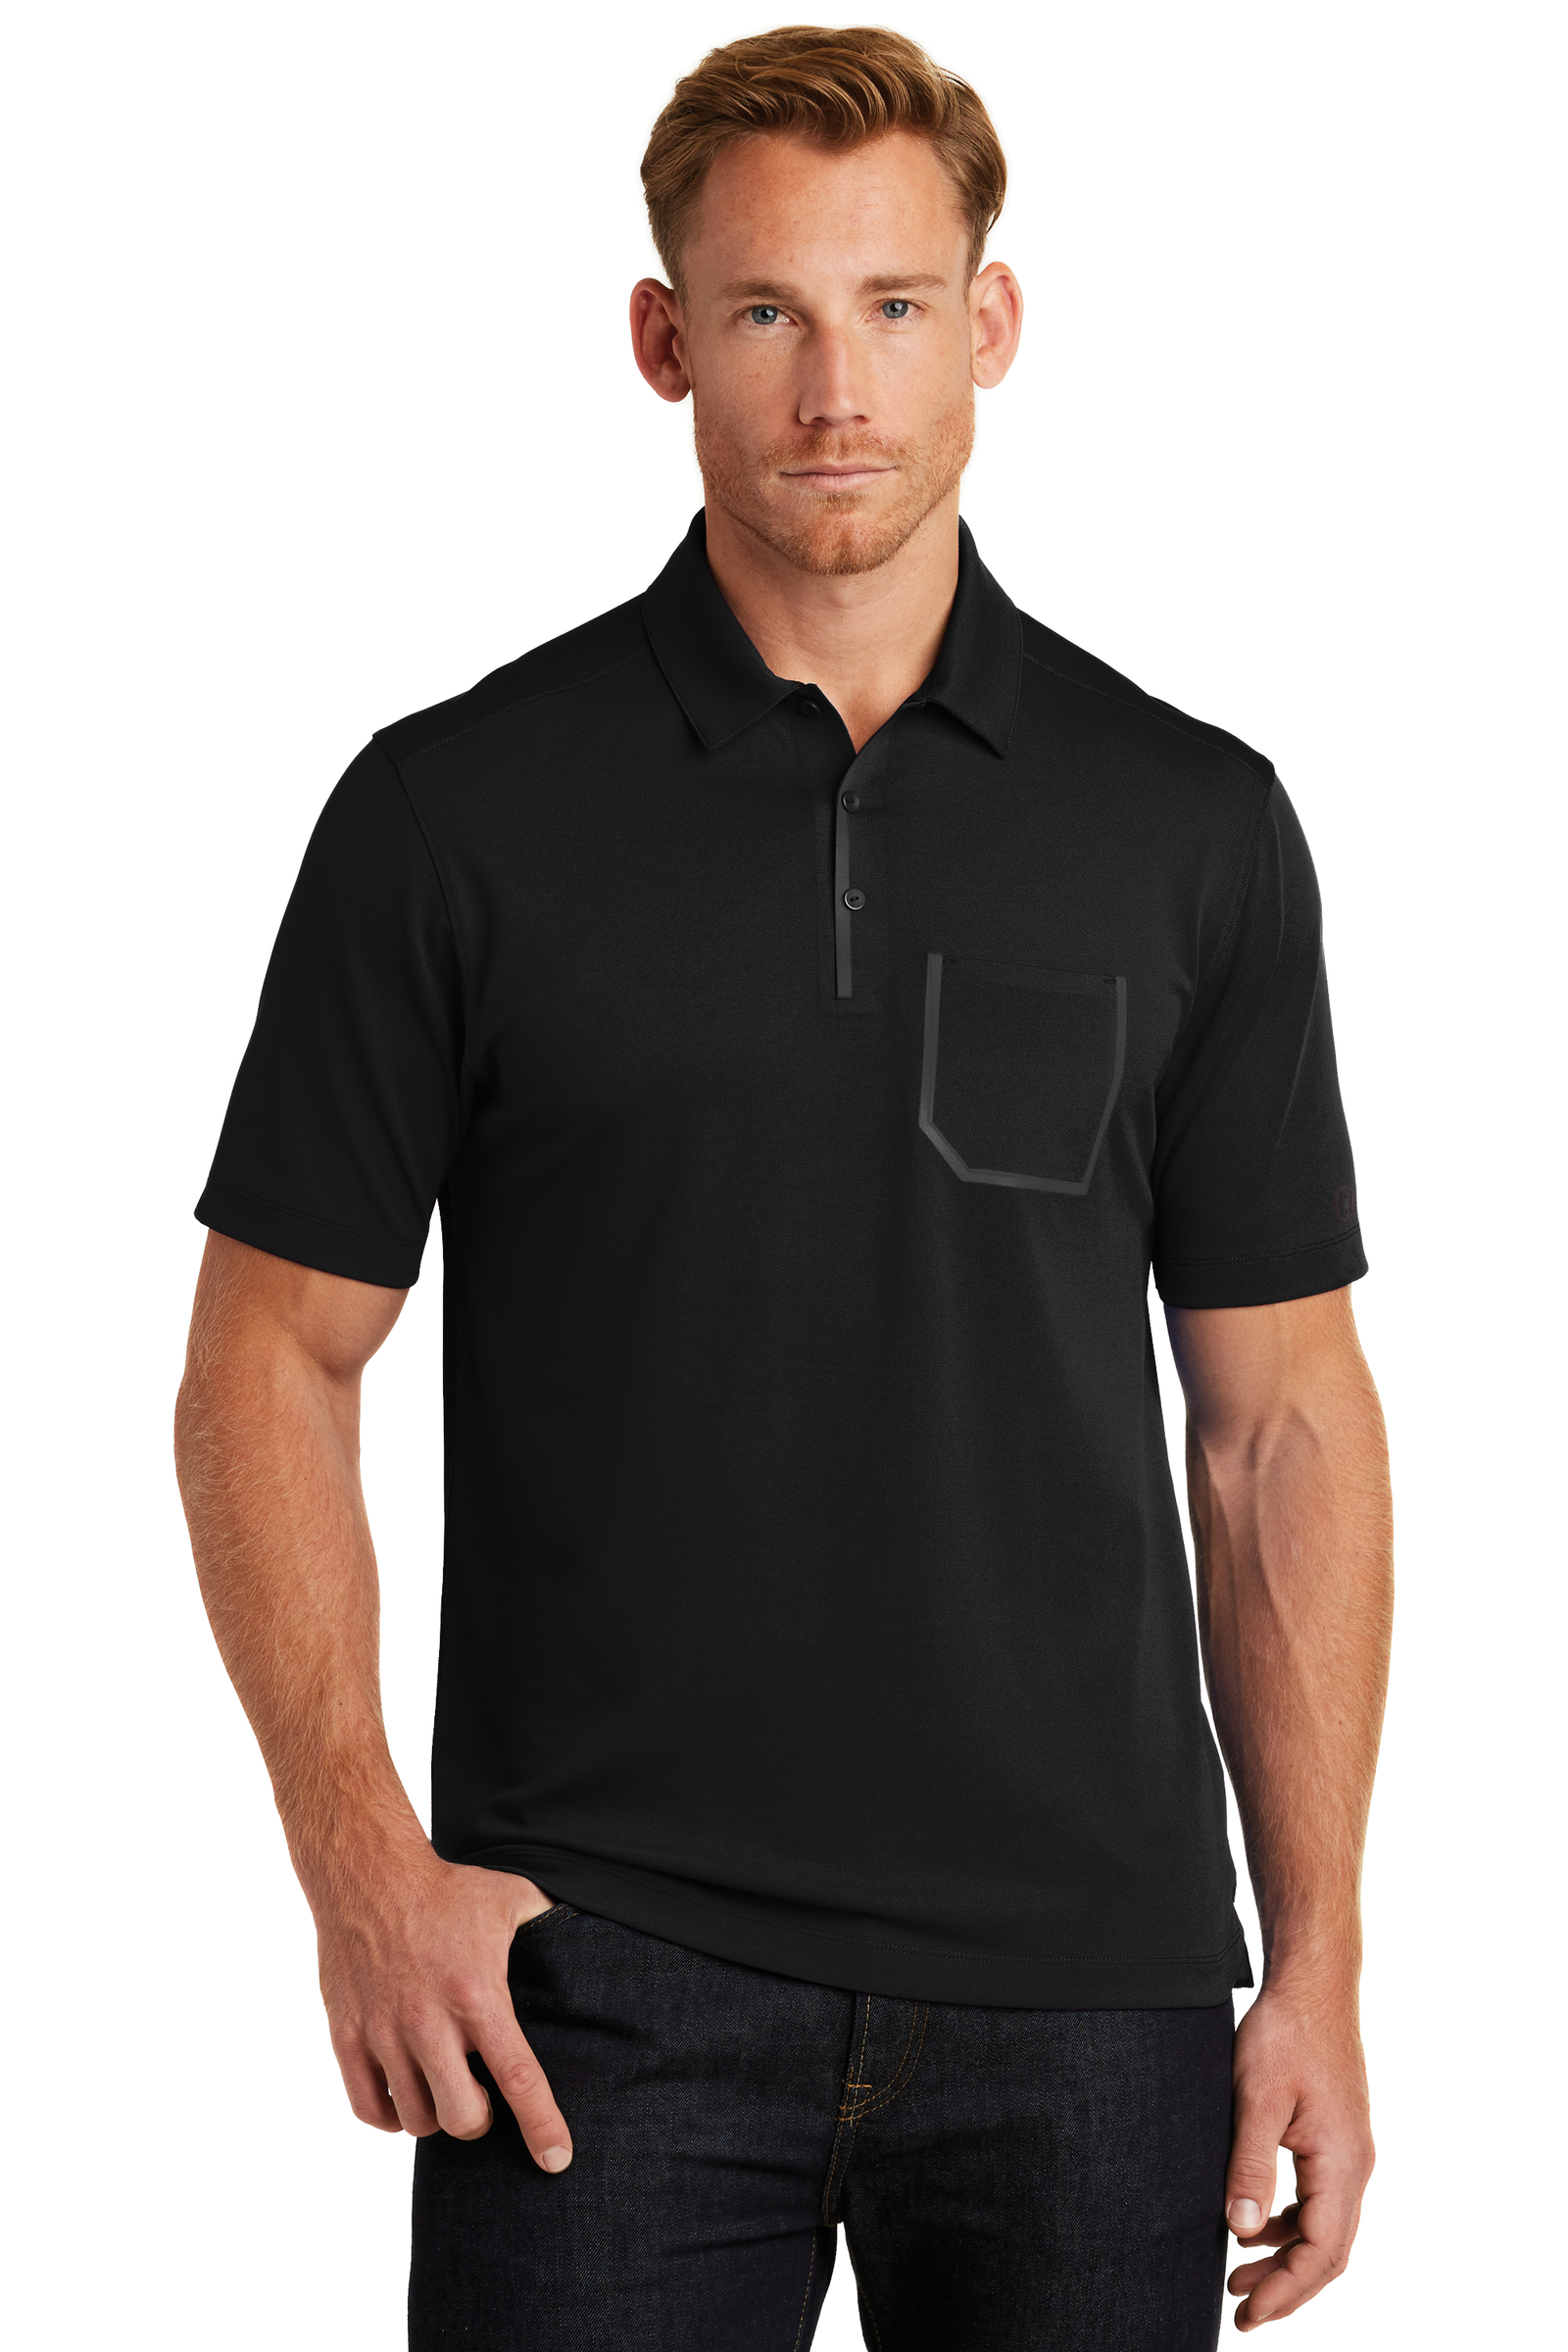 OGIO Embroidered Men's Fuse Polo